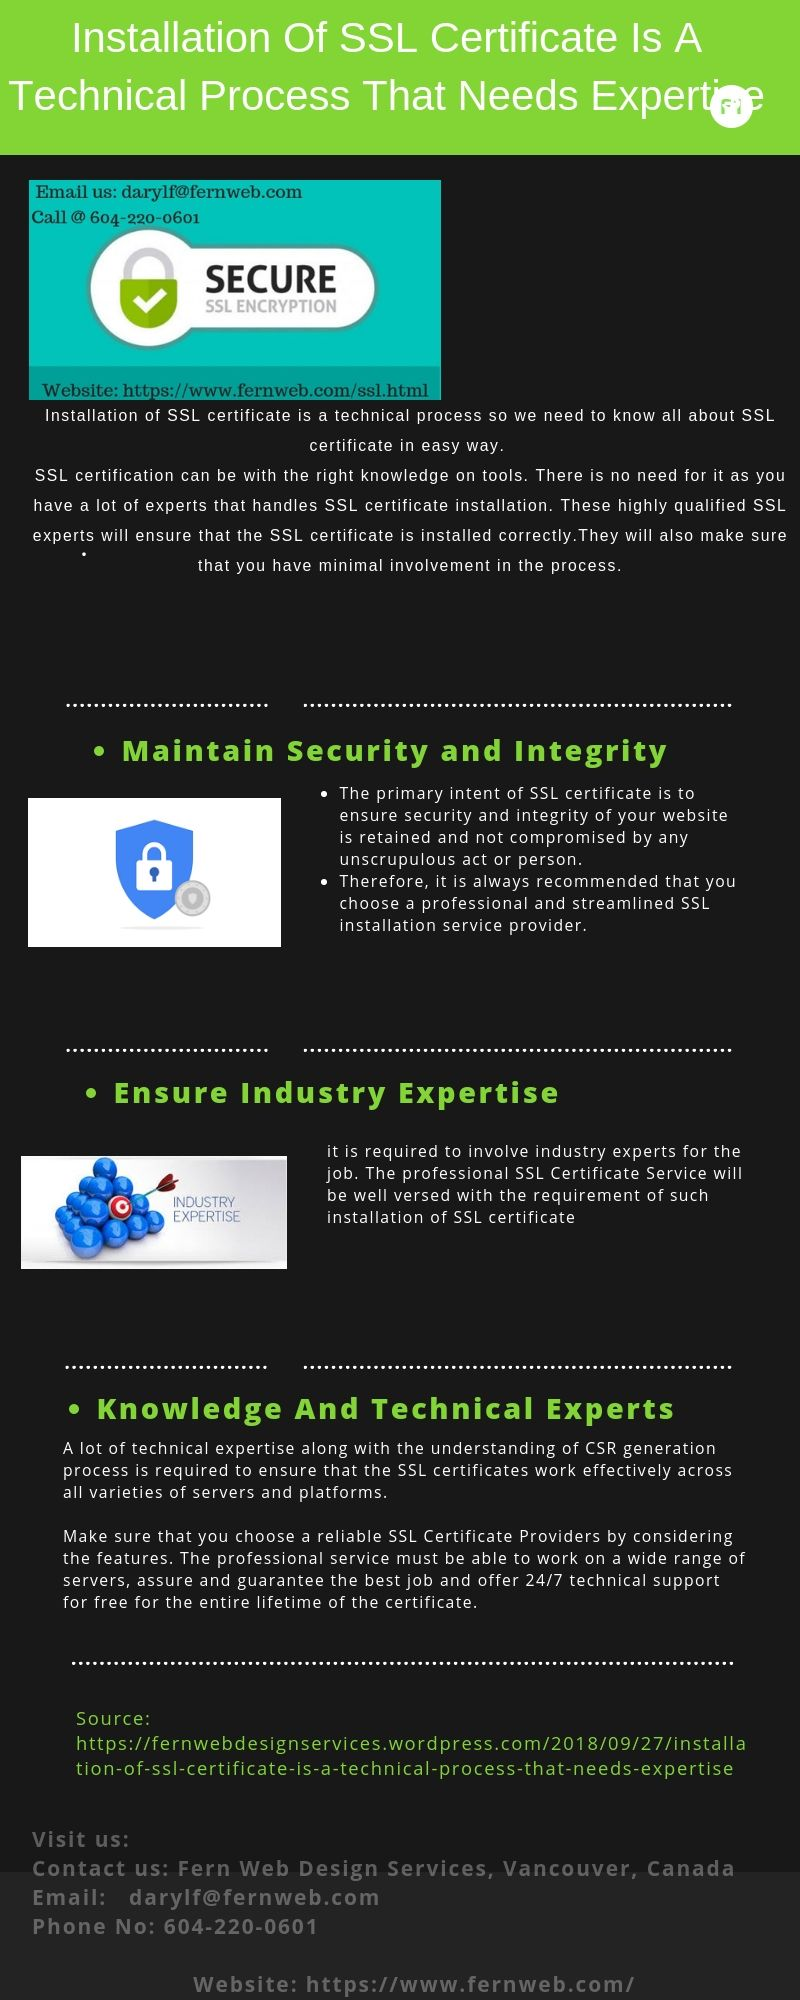 Installation Of Ssl Certificate Is A Technical Process That Needs